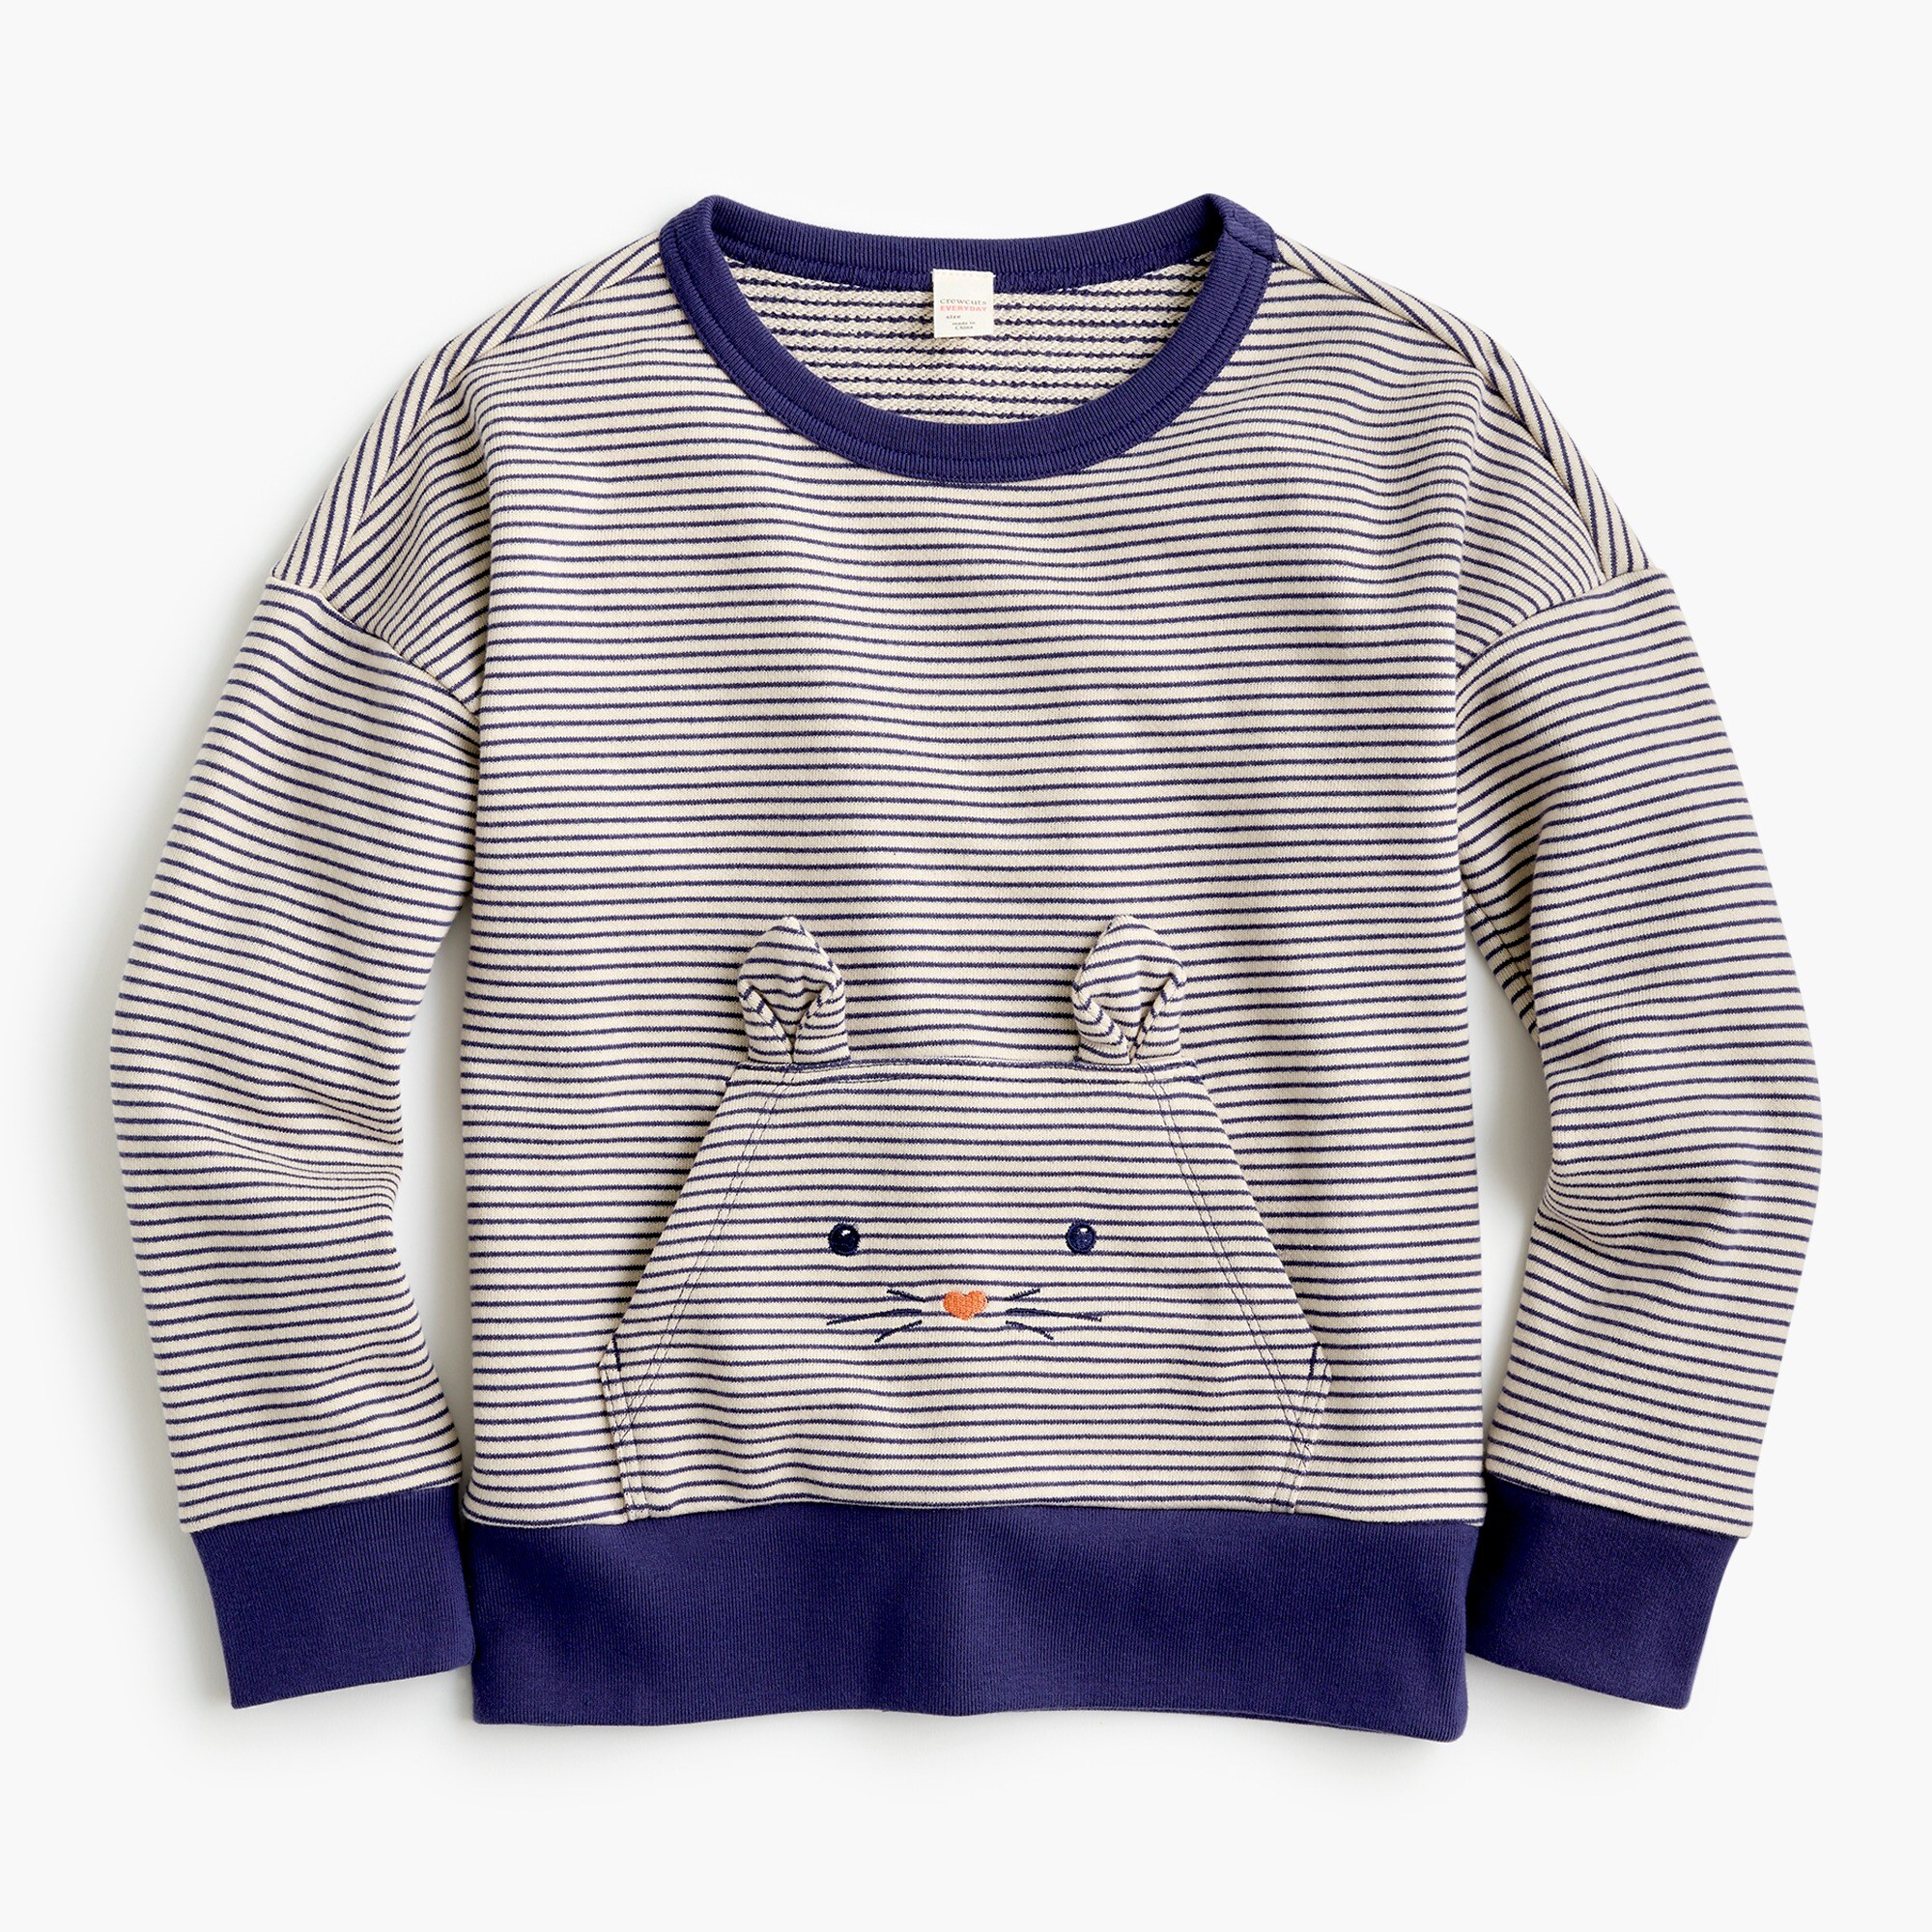 Girls' striped kitty-pocket popover sweatshirt